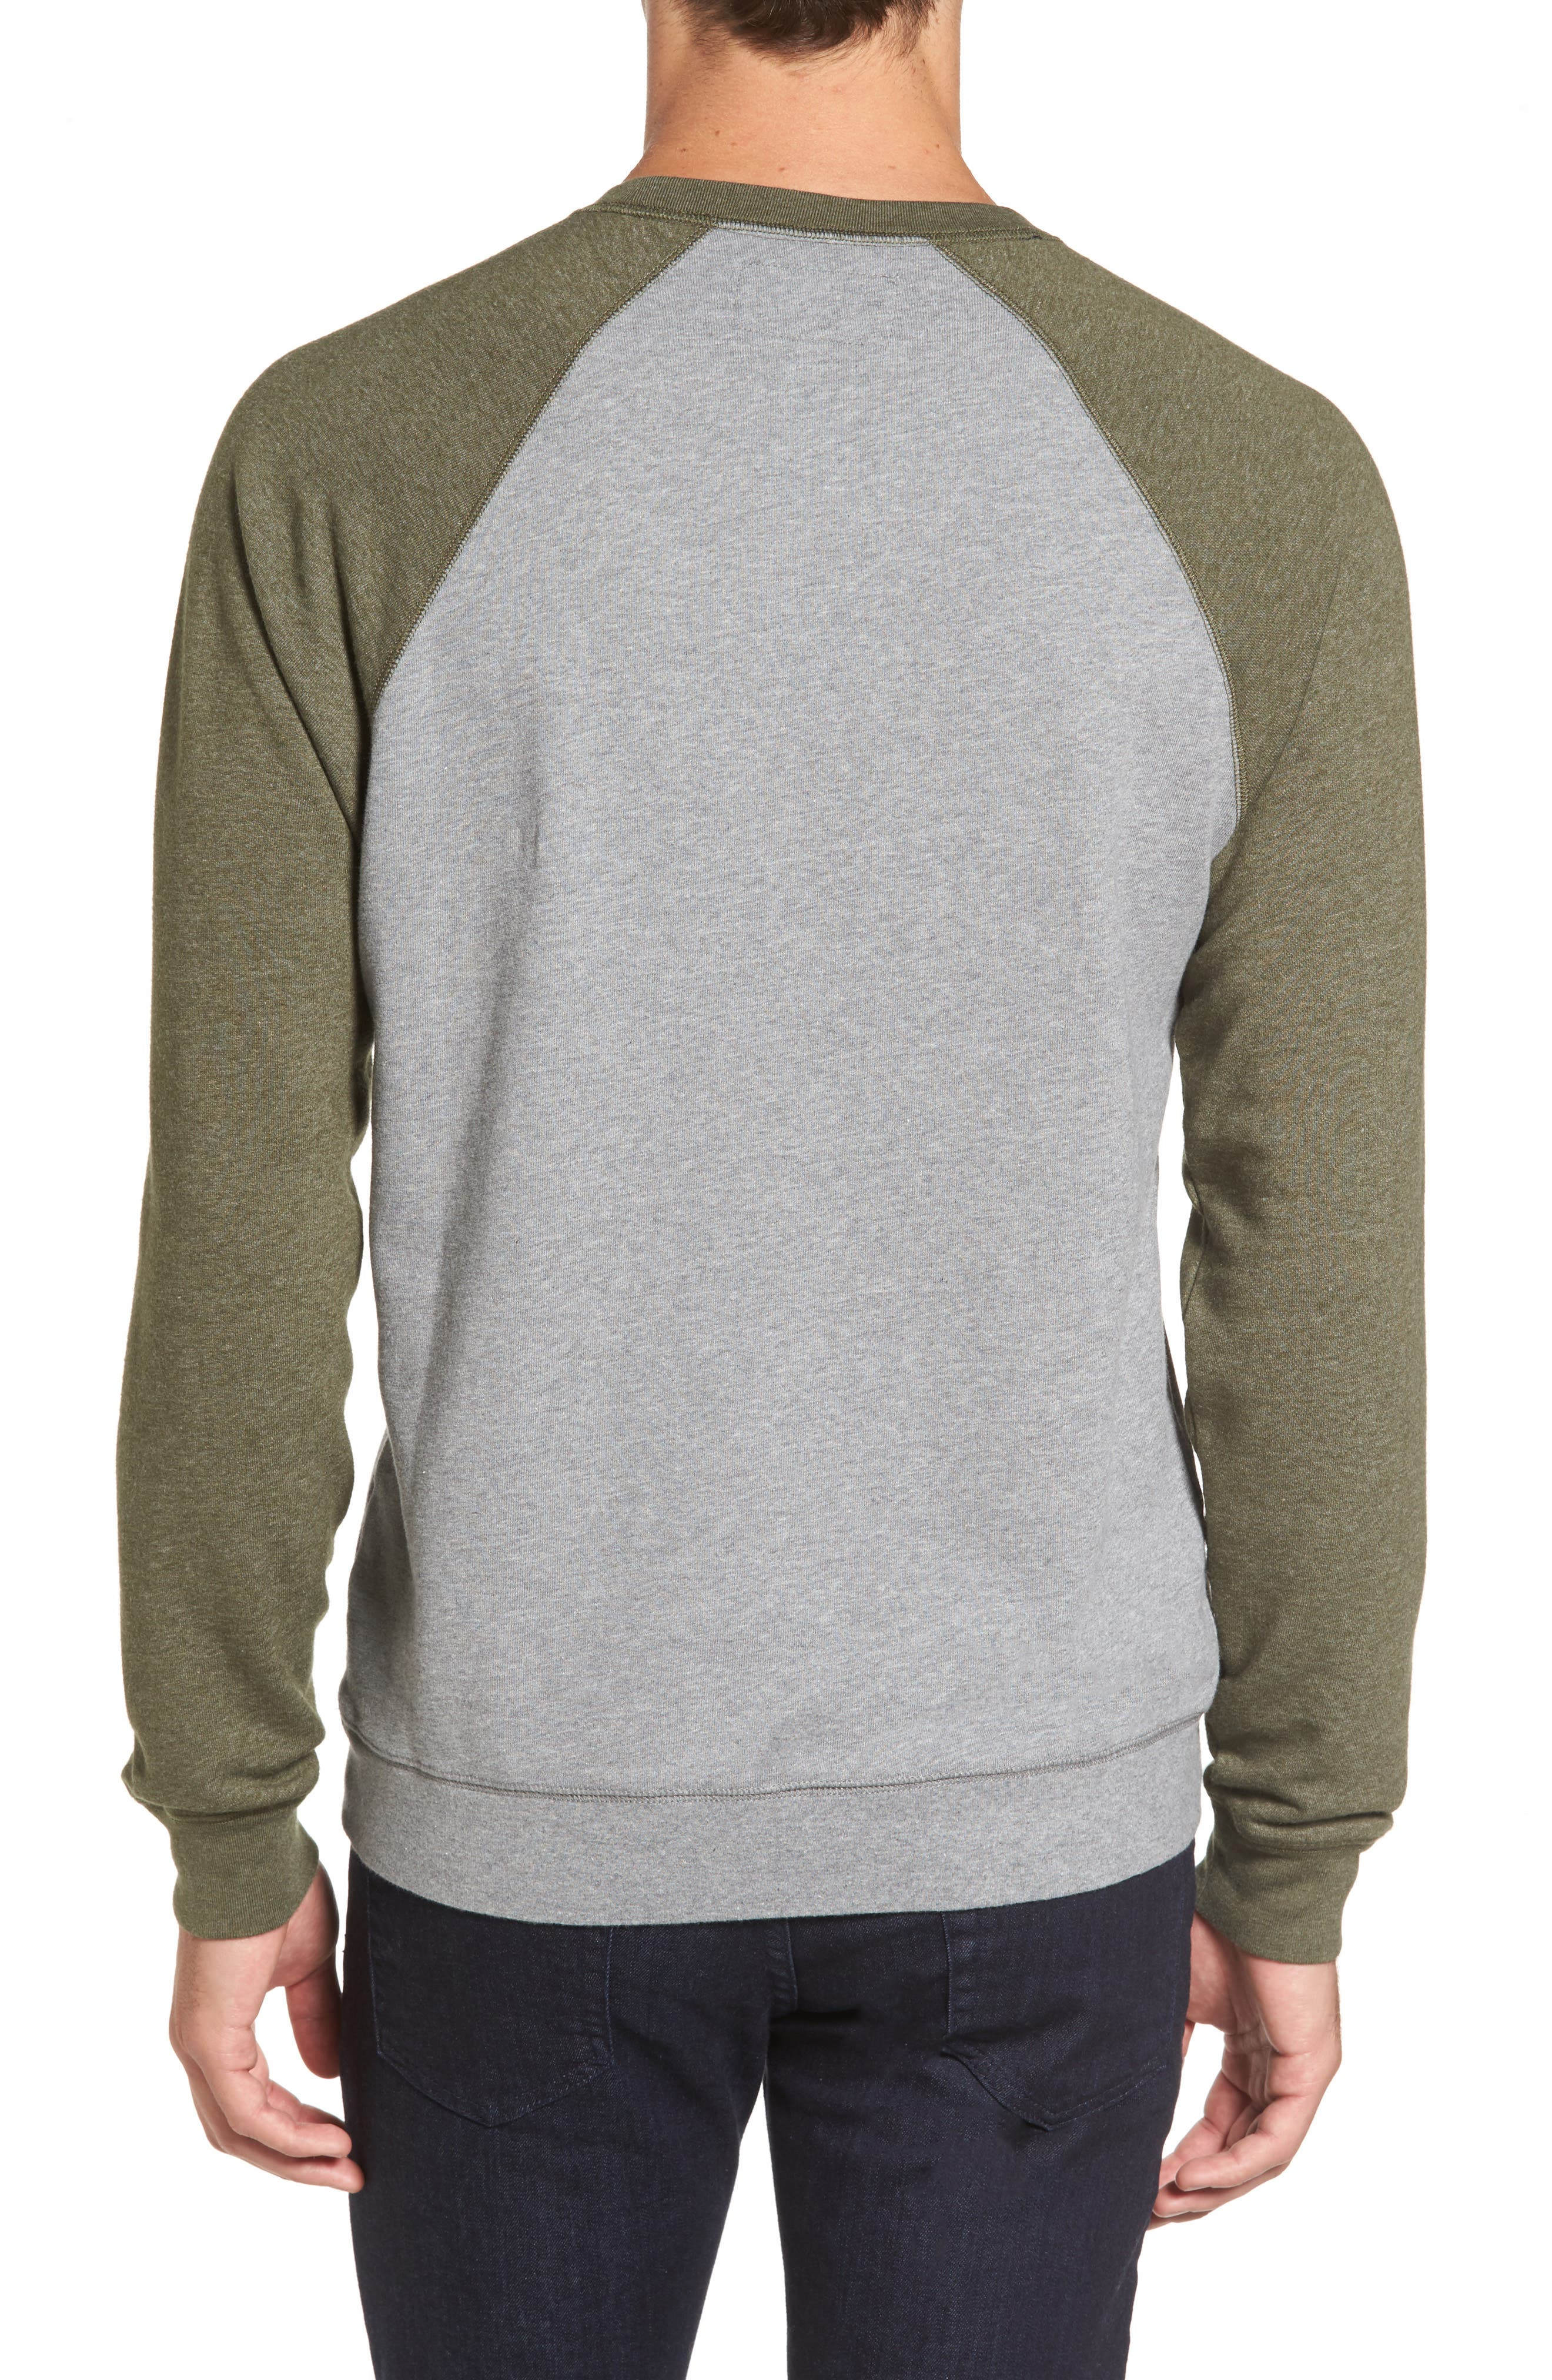 Colorblock French Terry Sweatshirt,                             Alternate thumbnail 2, color,                             Med Grey Army Heather